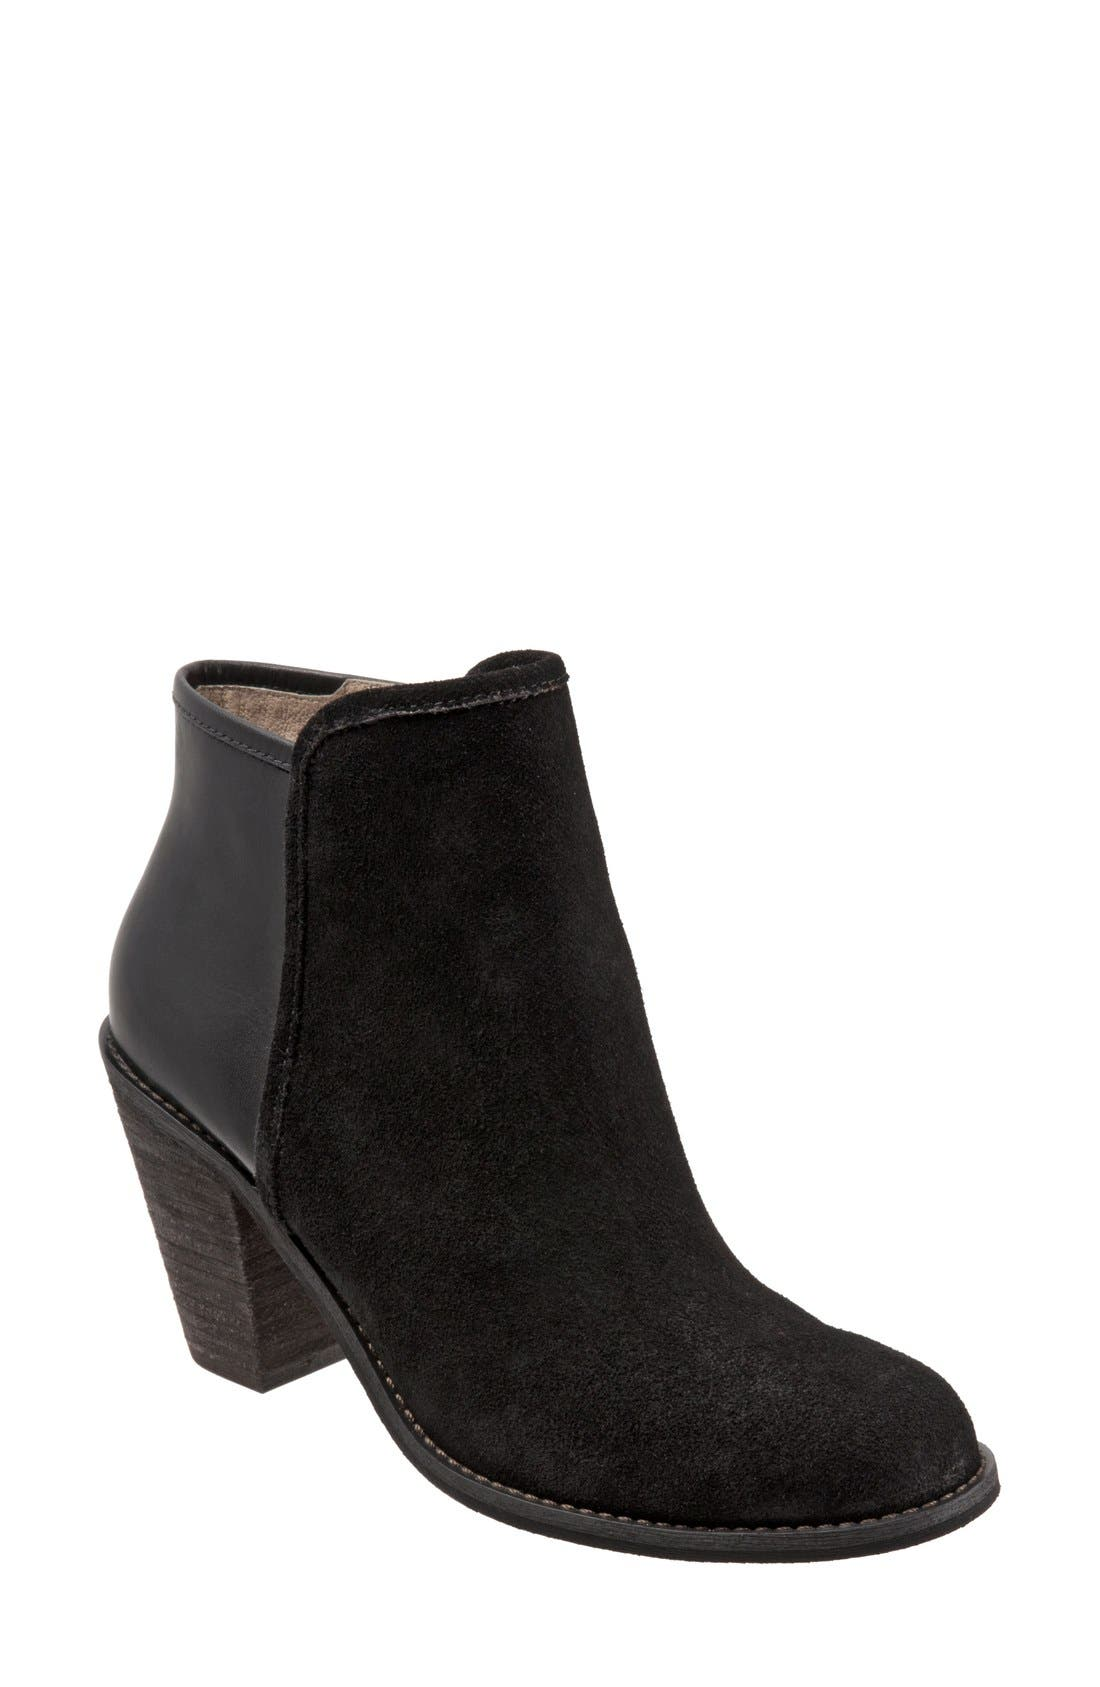 'Frontier' Bootie,                         Main,                         color, Black